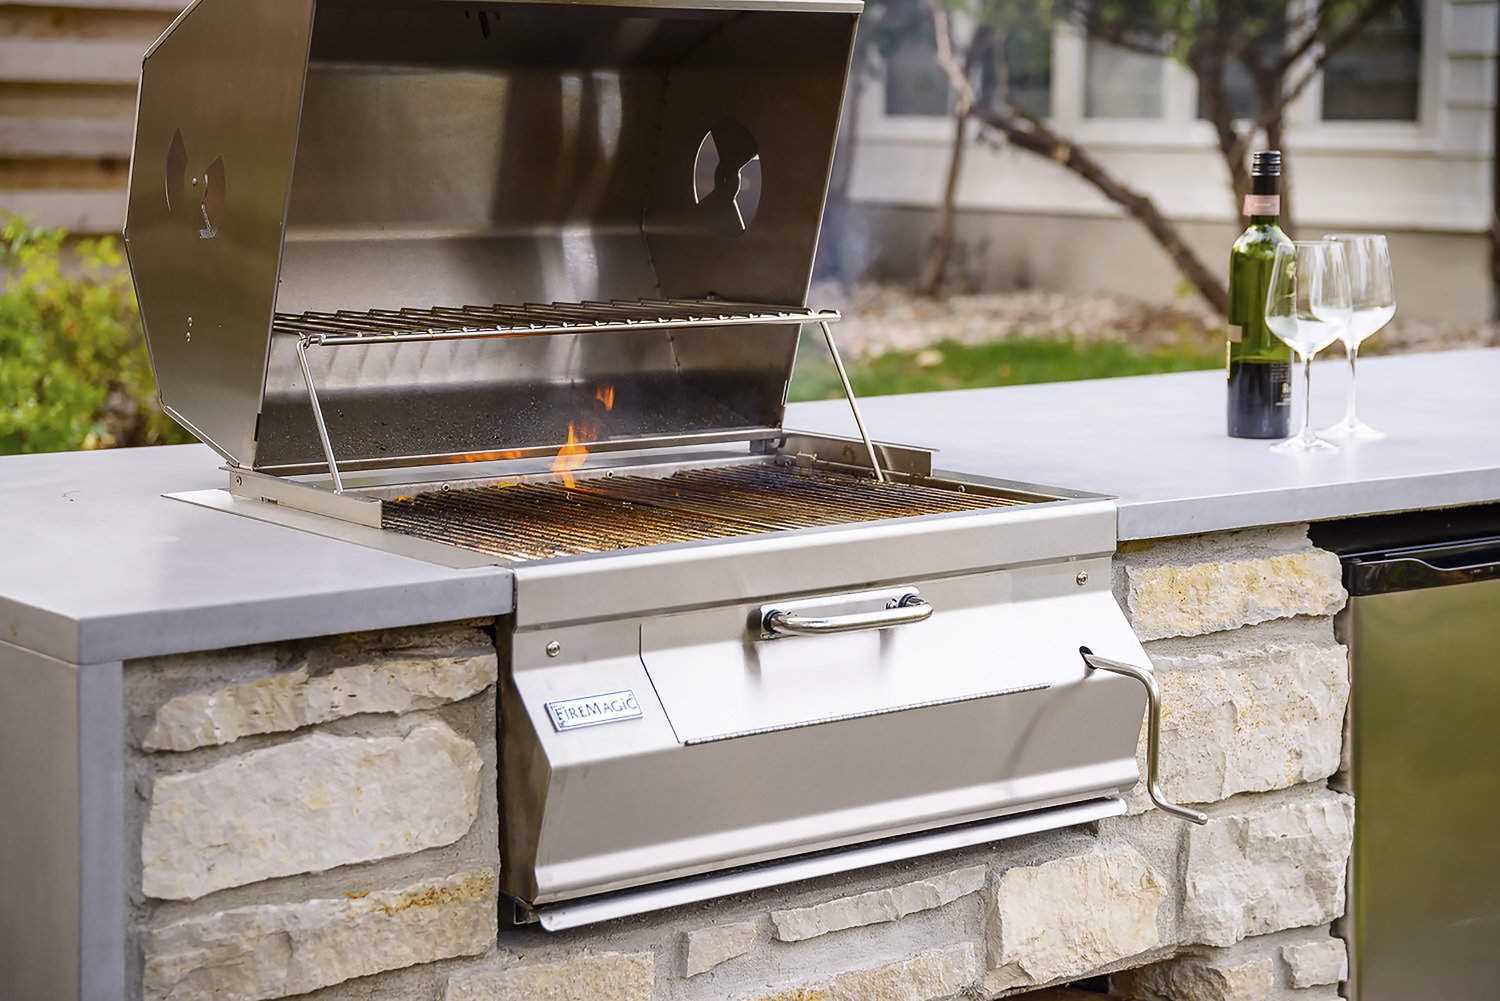 Fire Magic Grills Professional Outdoor Kitchen Builds Oasis Outdoor Living